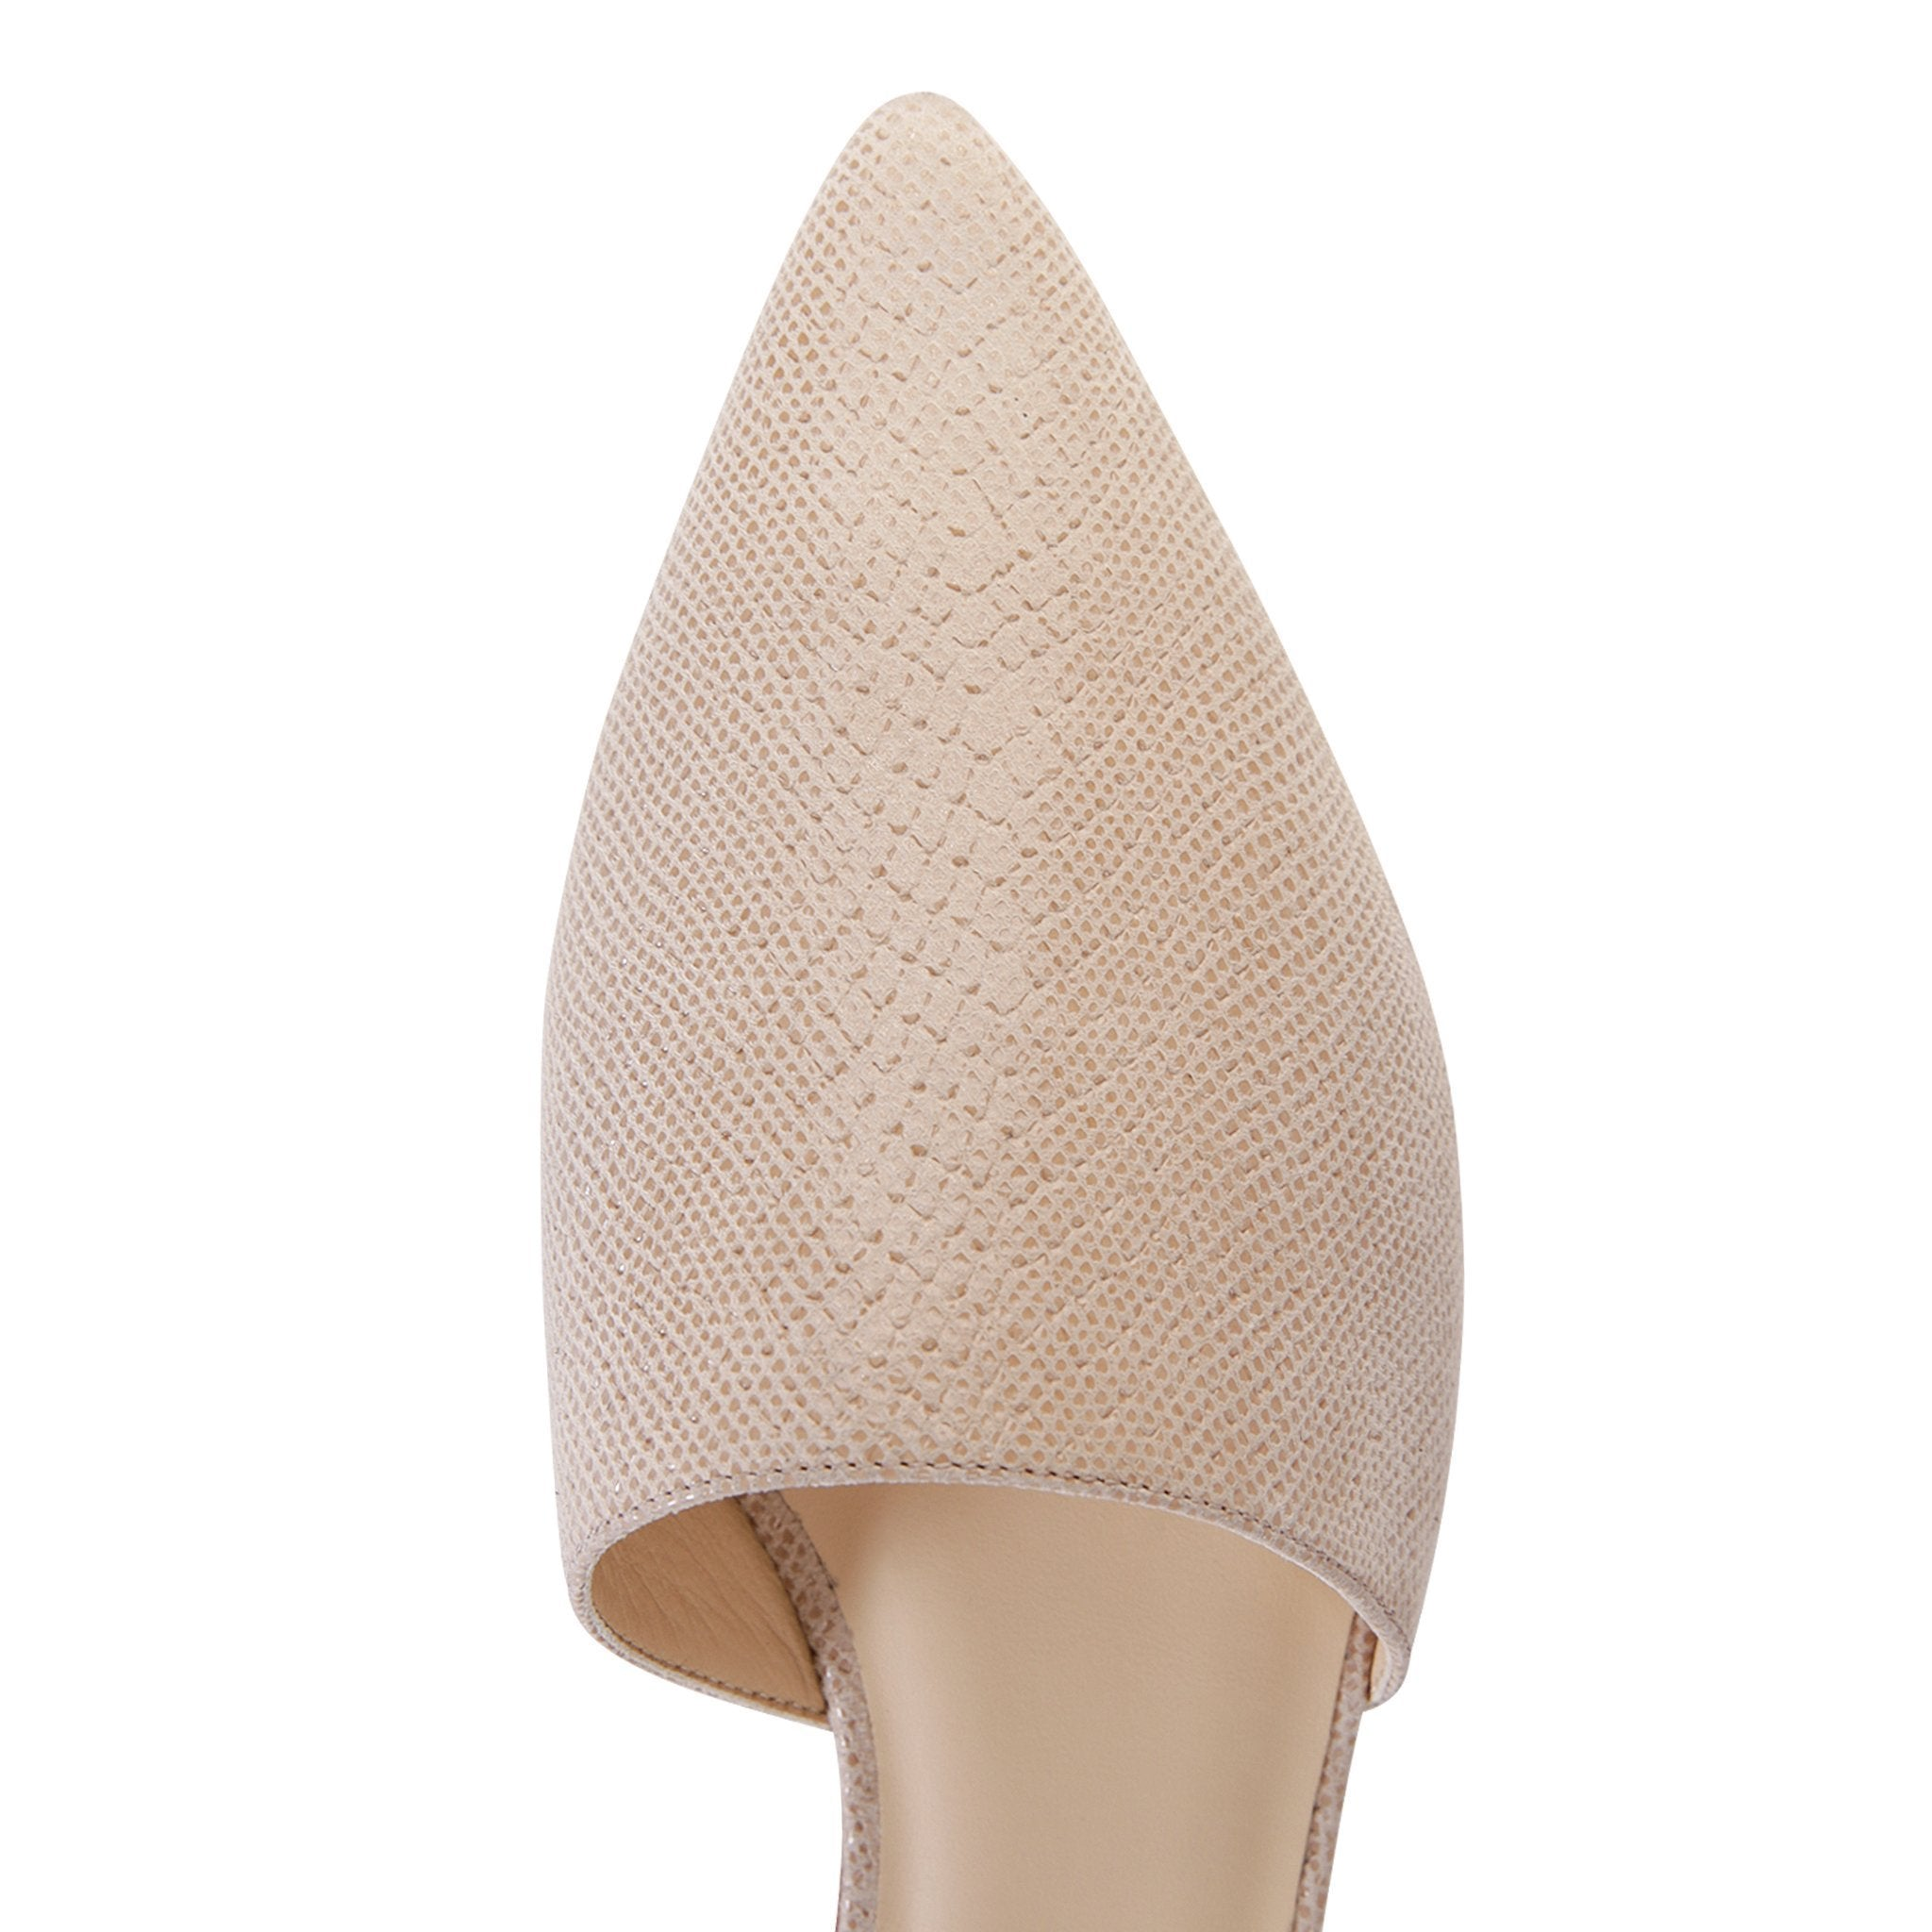 ELBA - Karung Tan, VIAJIYU - Women's Hand Made Sustainable Luxury Shoes. Made in Italy. Made to Order.